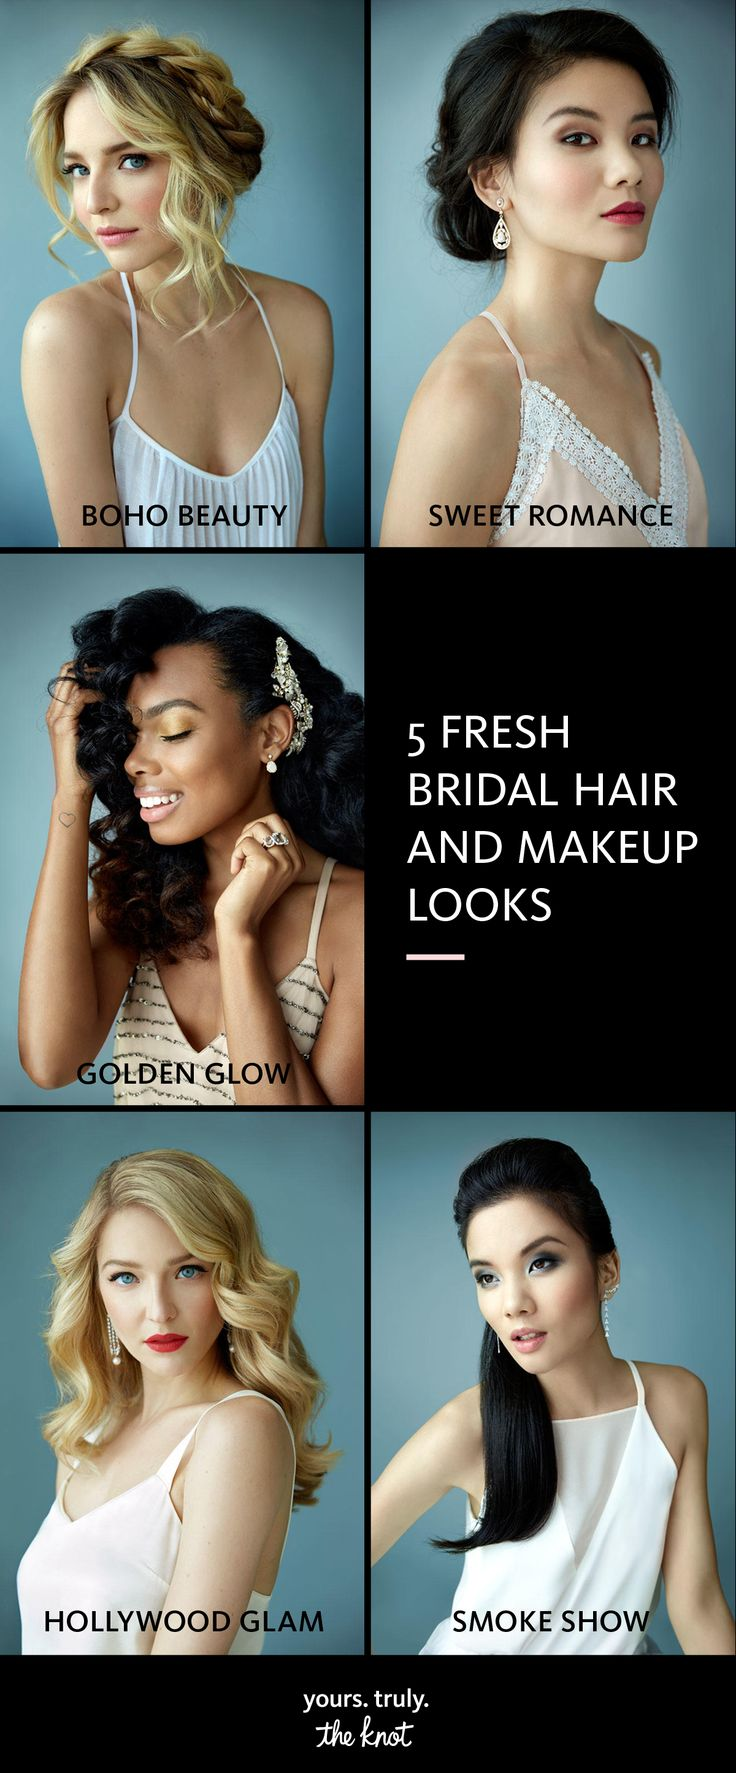 Less is more! We have 5 fresh bridal hair and makeup trends that are simply beautiful.